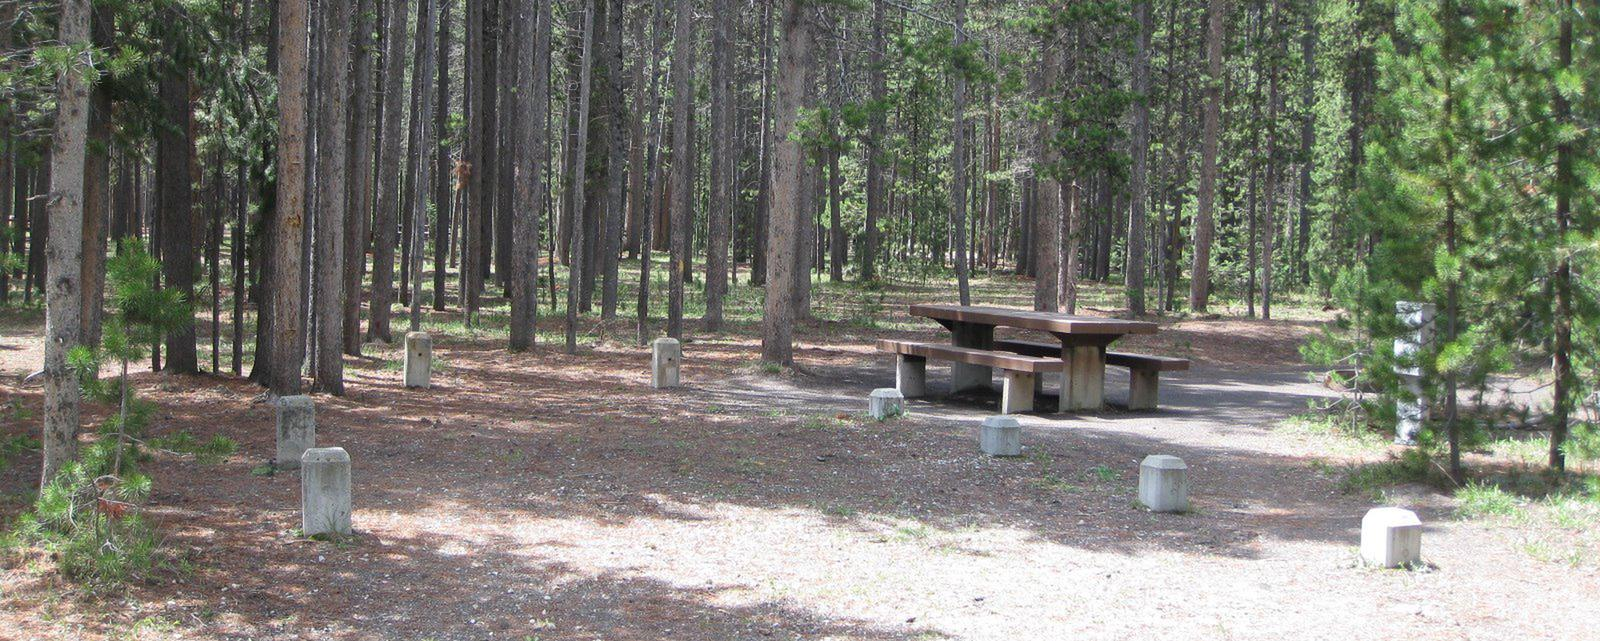 Site C21, surrounded by pine trees, picnic table & fire ringSite C21